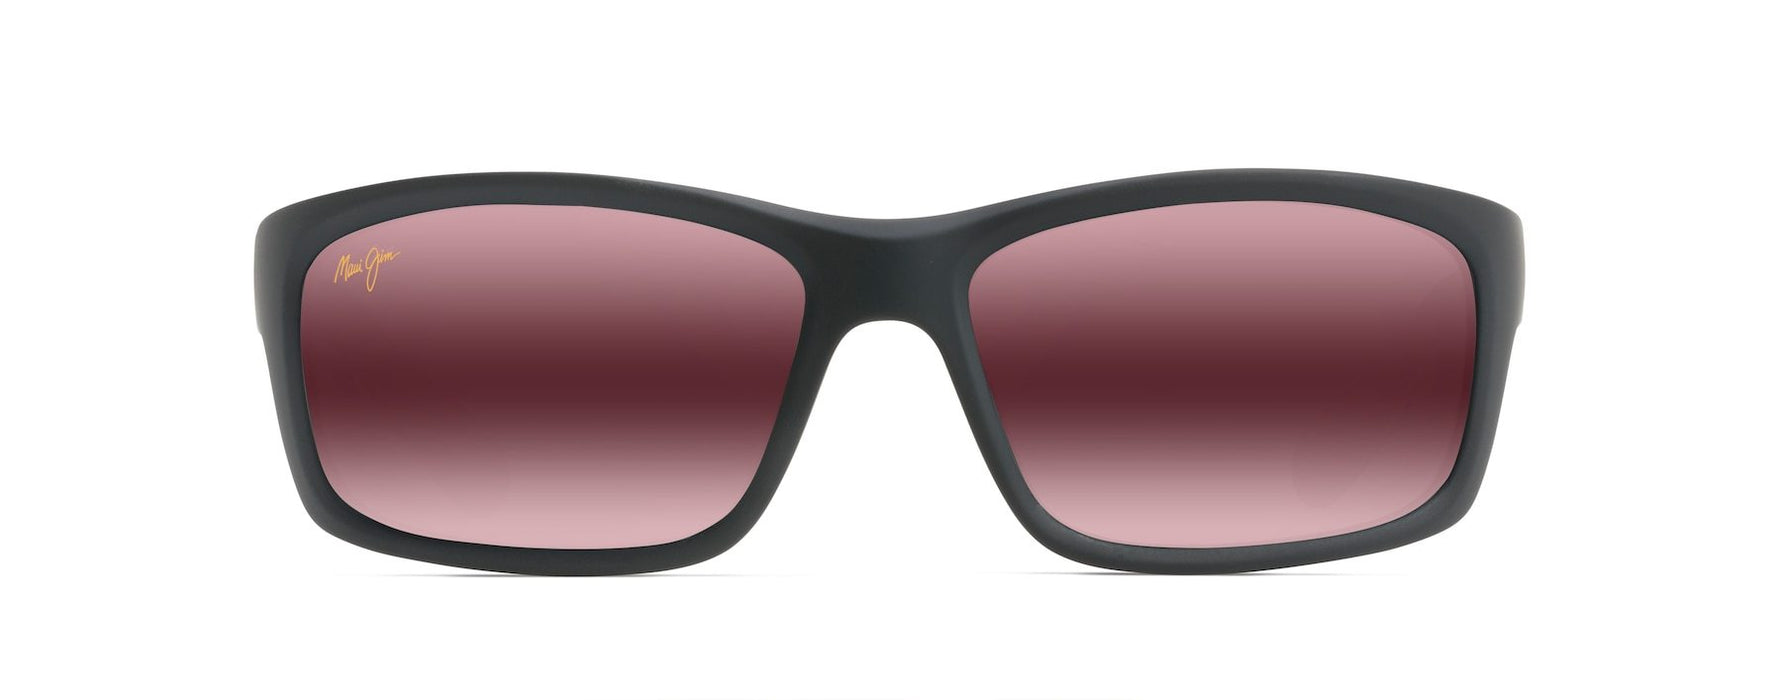 MyMaui Kanaio Coast MM766-012 Sunglasses